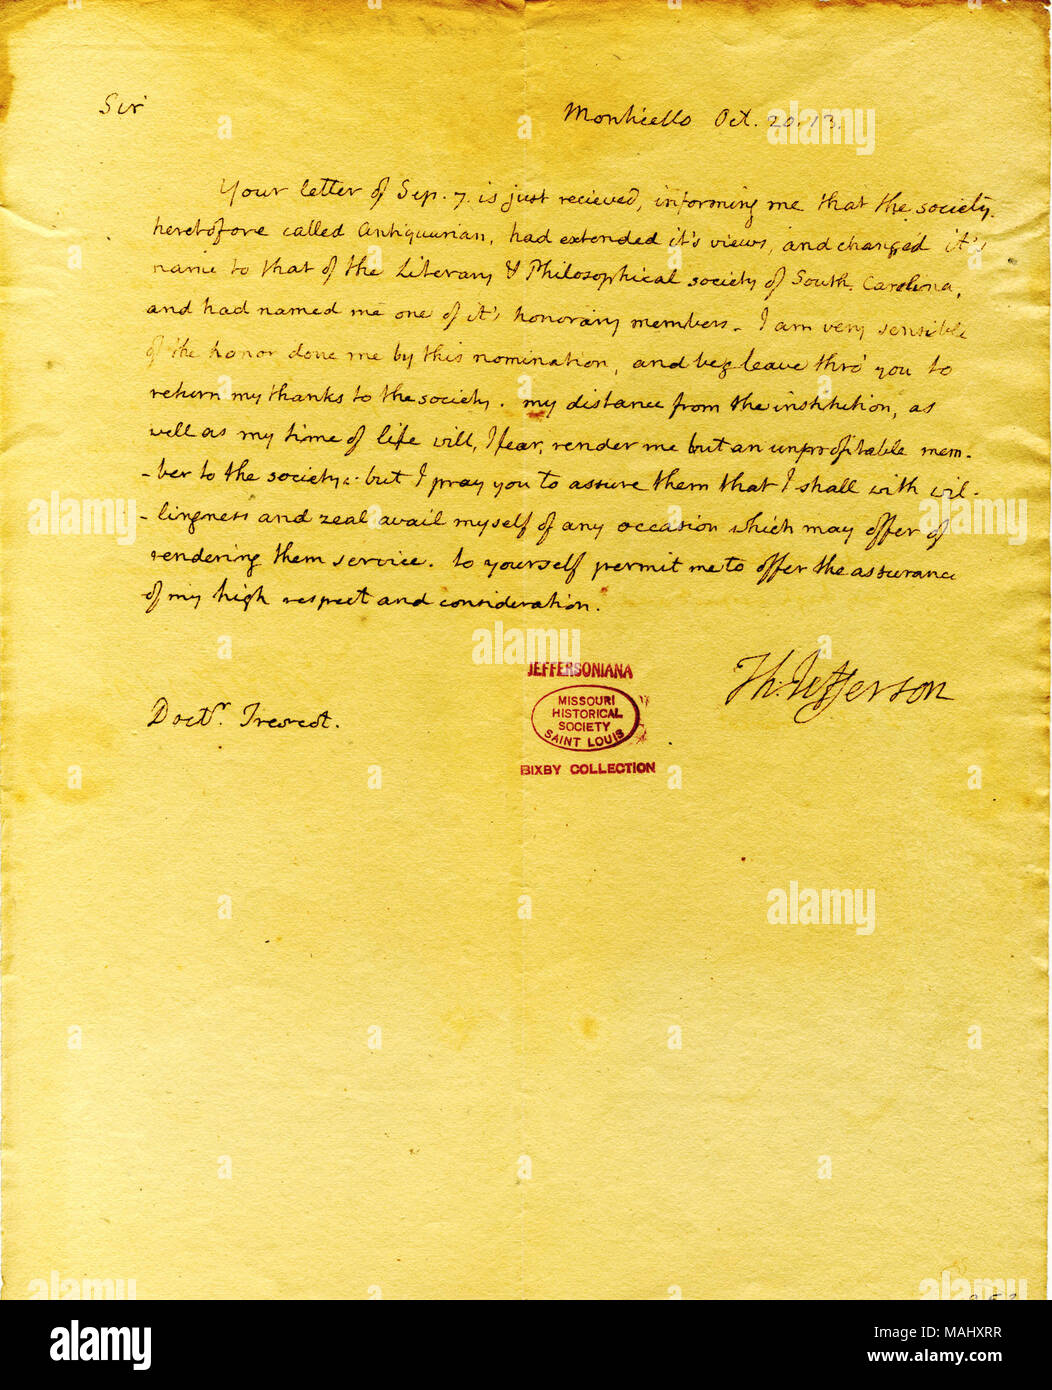 Thanks him for the honorary membership in the Literary and Philosophical Society of South Carolina, but fears he will be an unprofitable member. Title: Letter from Thomas Jefferson, Monticello, to Dr. John Trescot, October 20, 1813  . 20 October 1813. Jefferson, Thomas, 1743-1826 - Stock Image